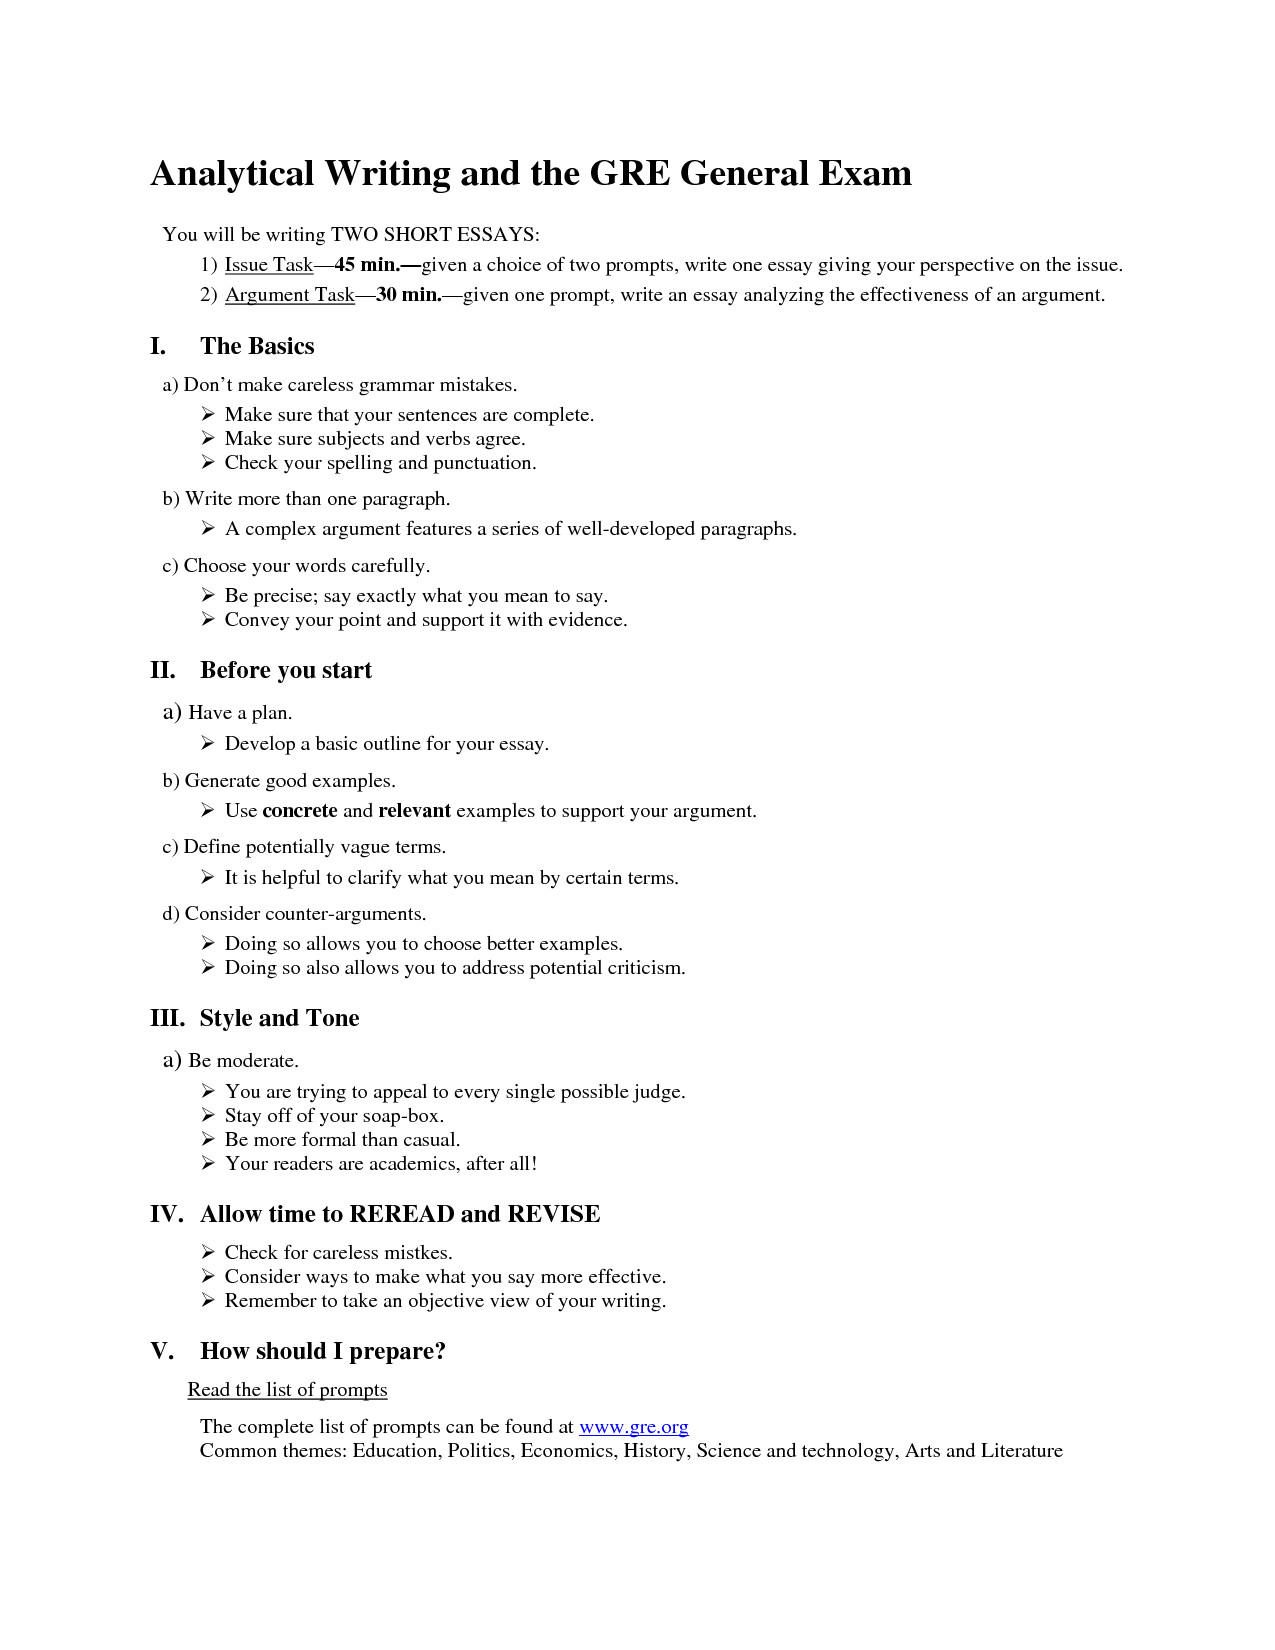 006 Essay Example Gre Analytical Writing Sample Essays Pdf Letter Job Interest In Solutions To The Real Topics Free Download Book Test Prep Series Rare Argument Answers Magoosh Pool Full